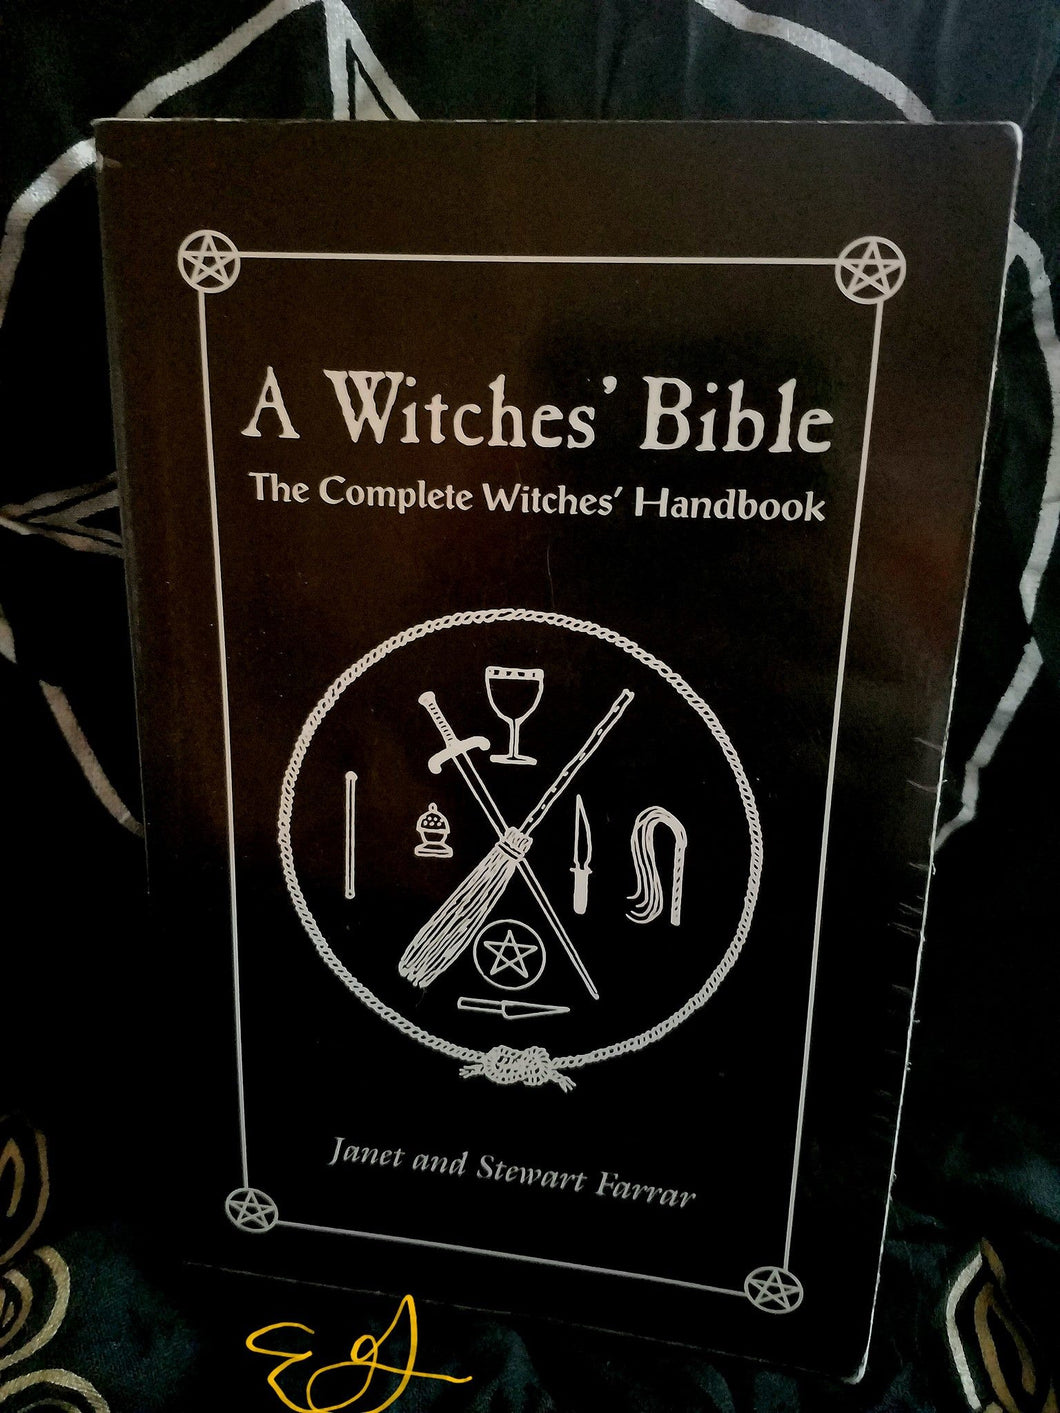 A Witches' Bible By Janet & Steart Farrar